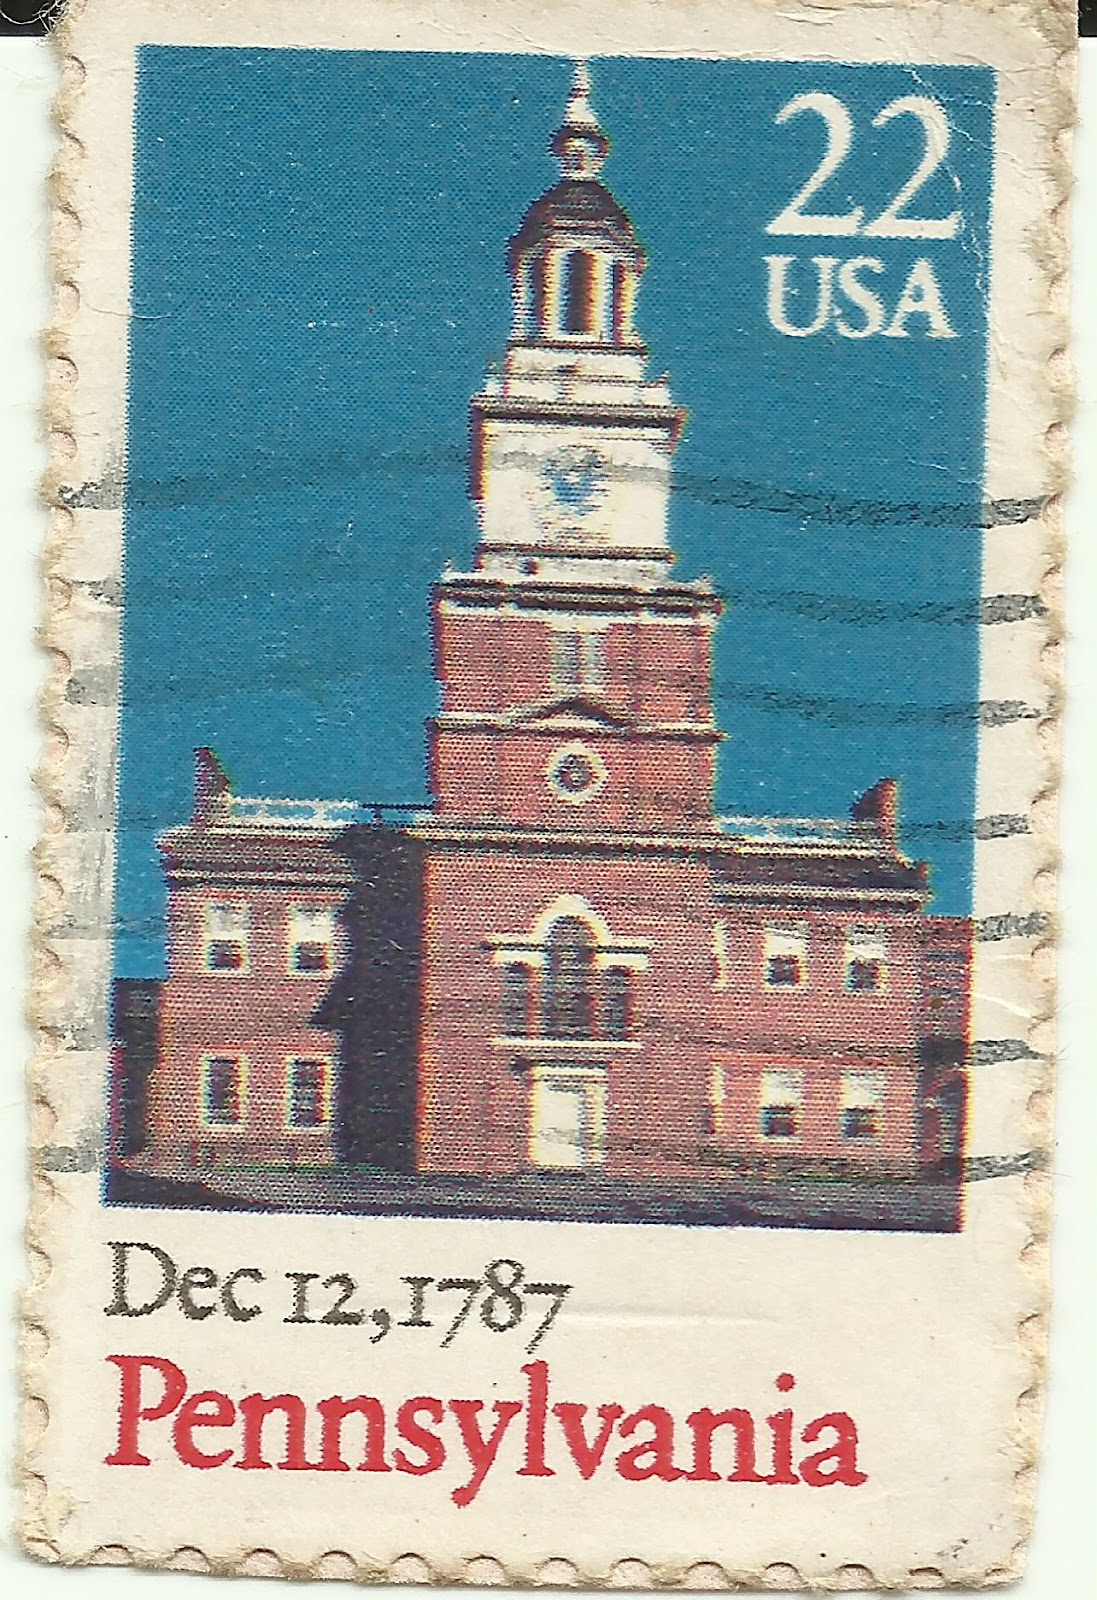 I Am No Stamp Collector US Stamp Pennsylvania Dec 12